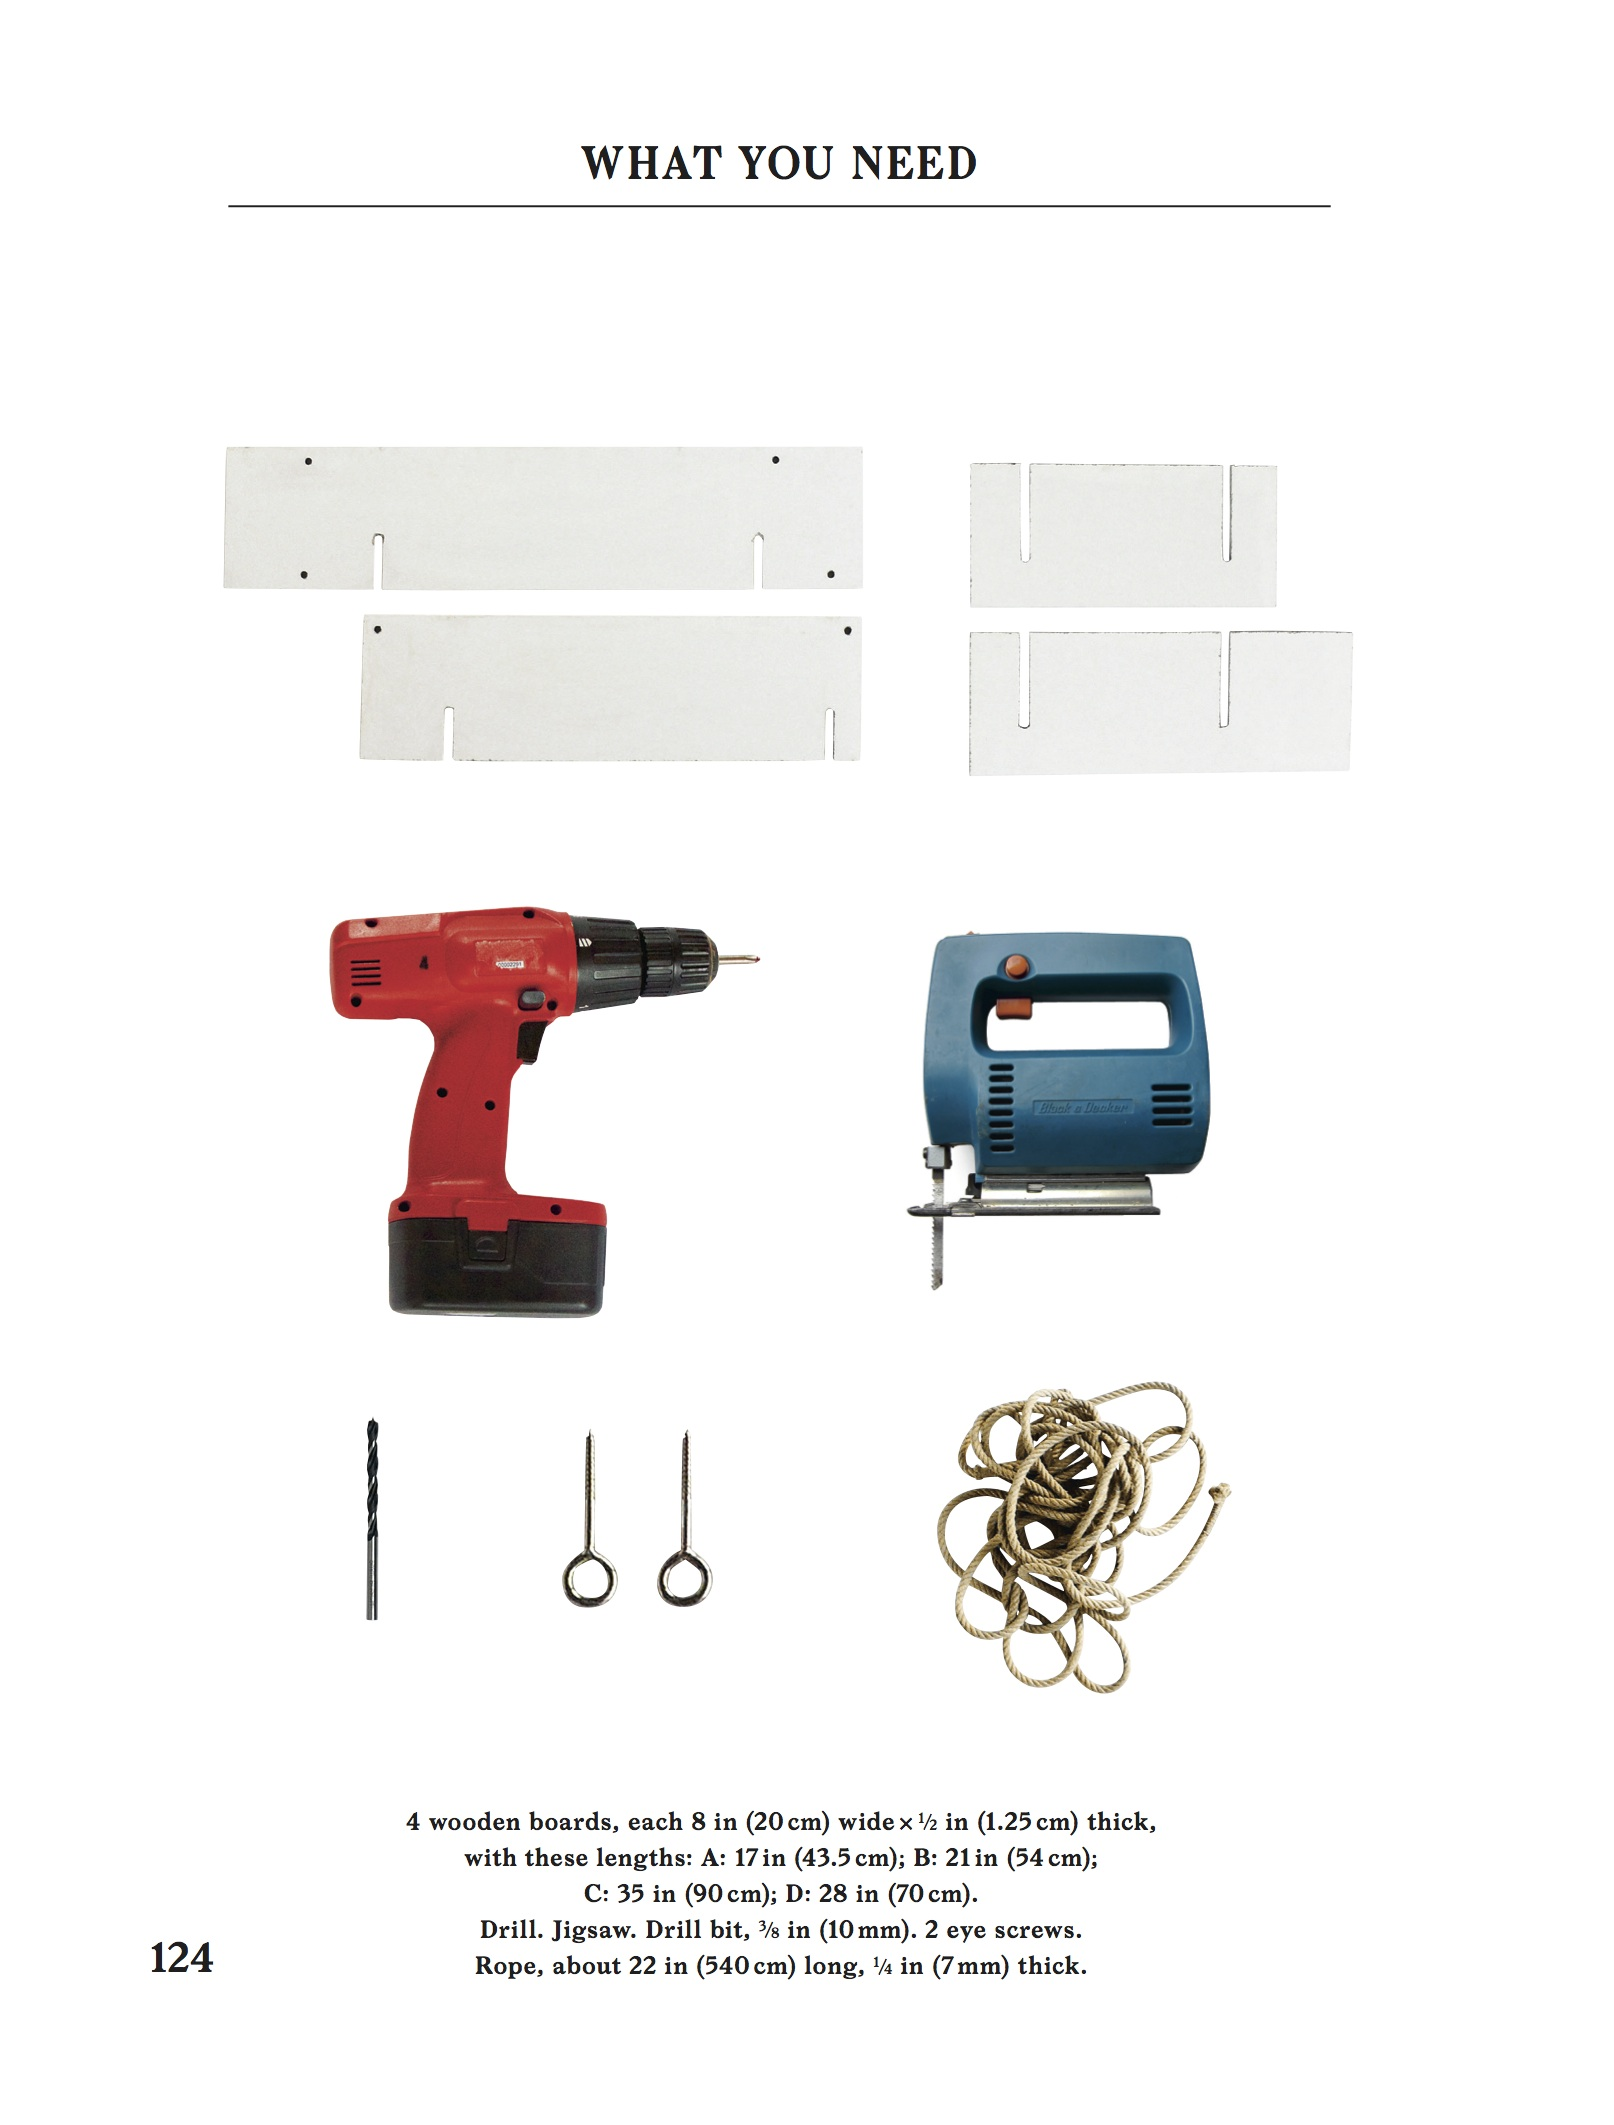 Ai weiwei and other artists on how to design your own furniture quartz image courtesy of phaidon solutioingenieria Image collections